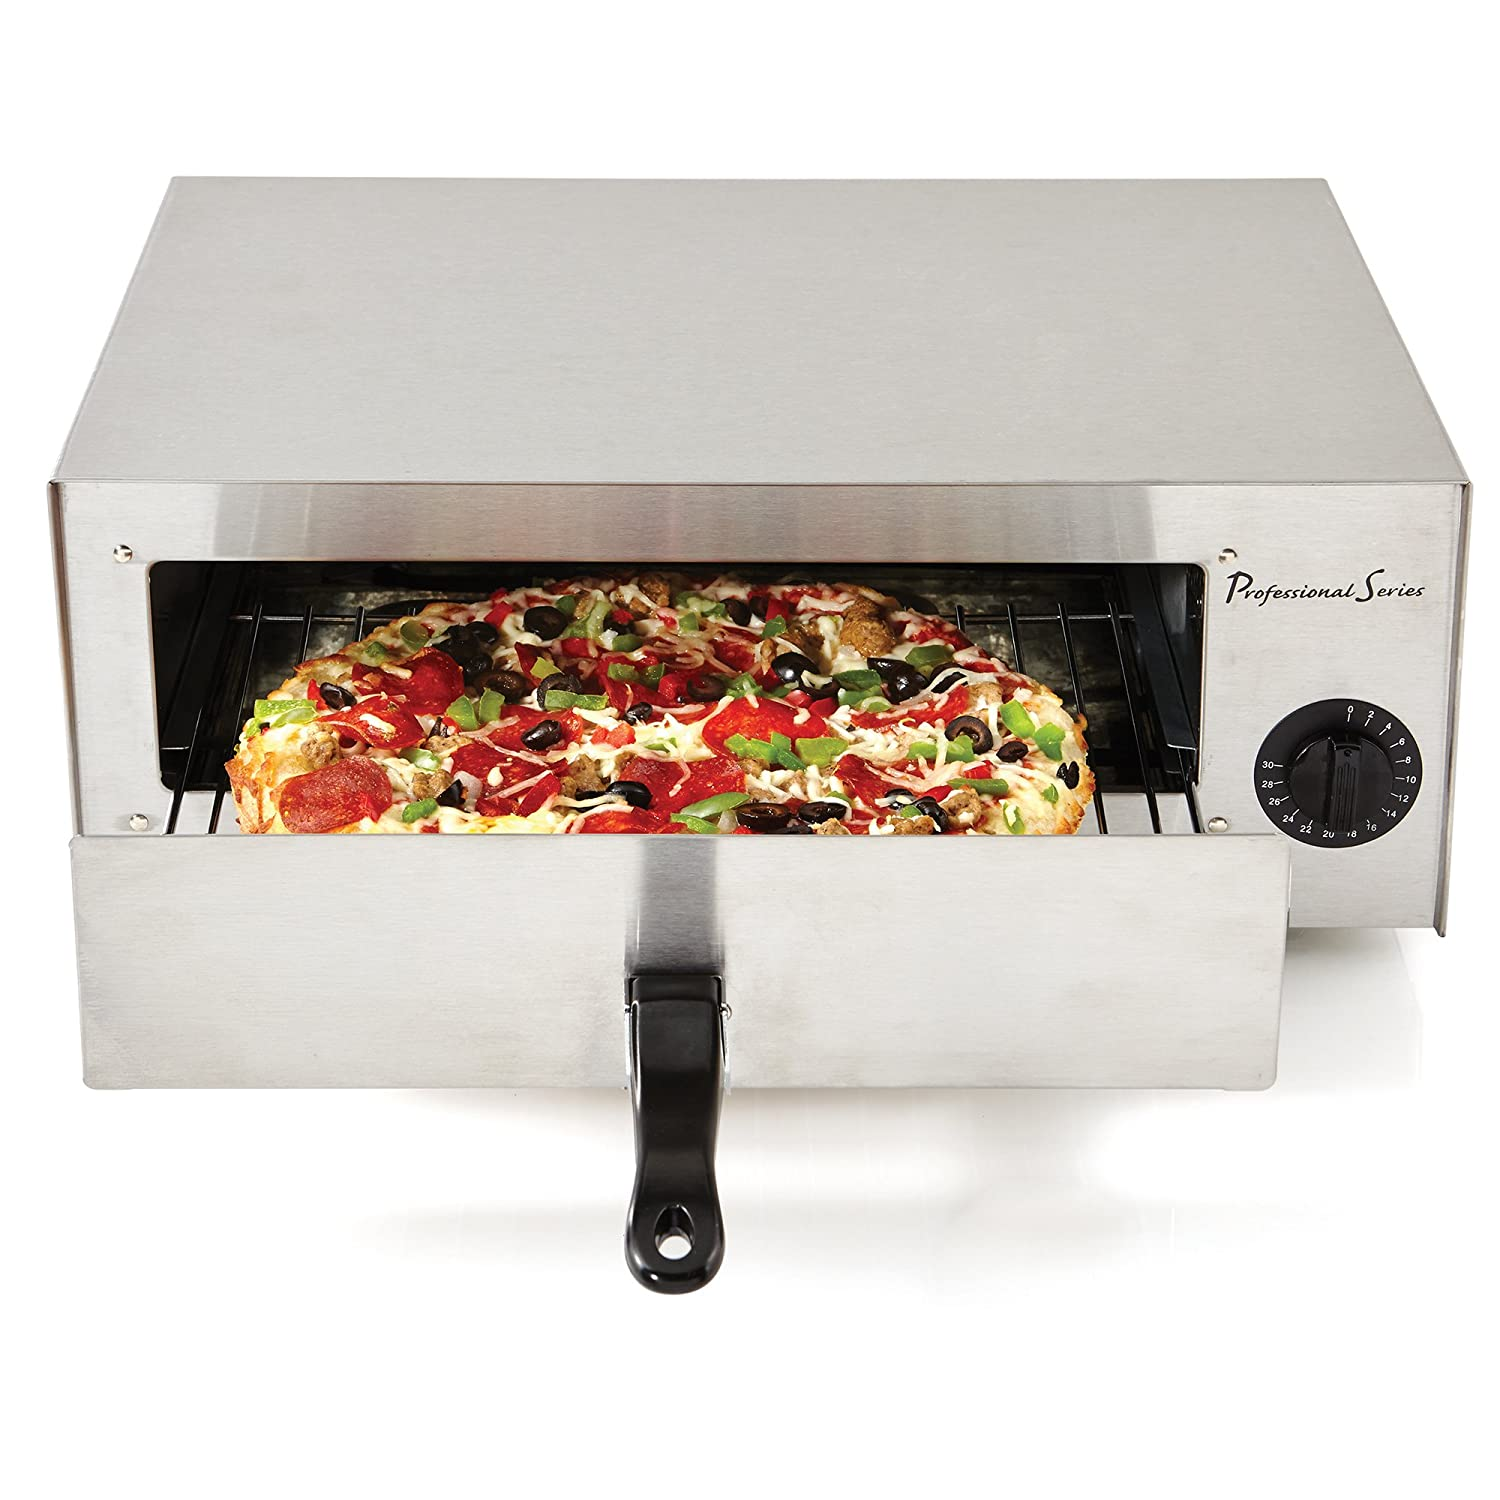 Stainless Steel Professional Series PS75891 Pizza Oven Baker and Frozen Snack Oven